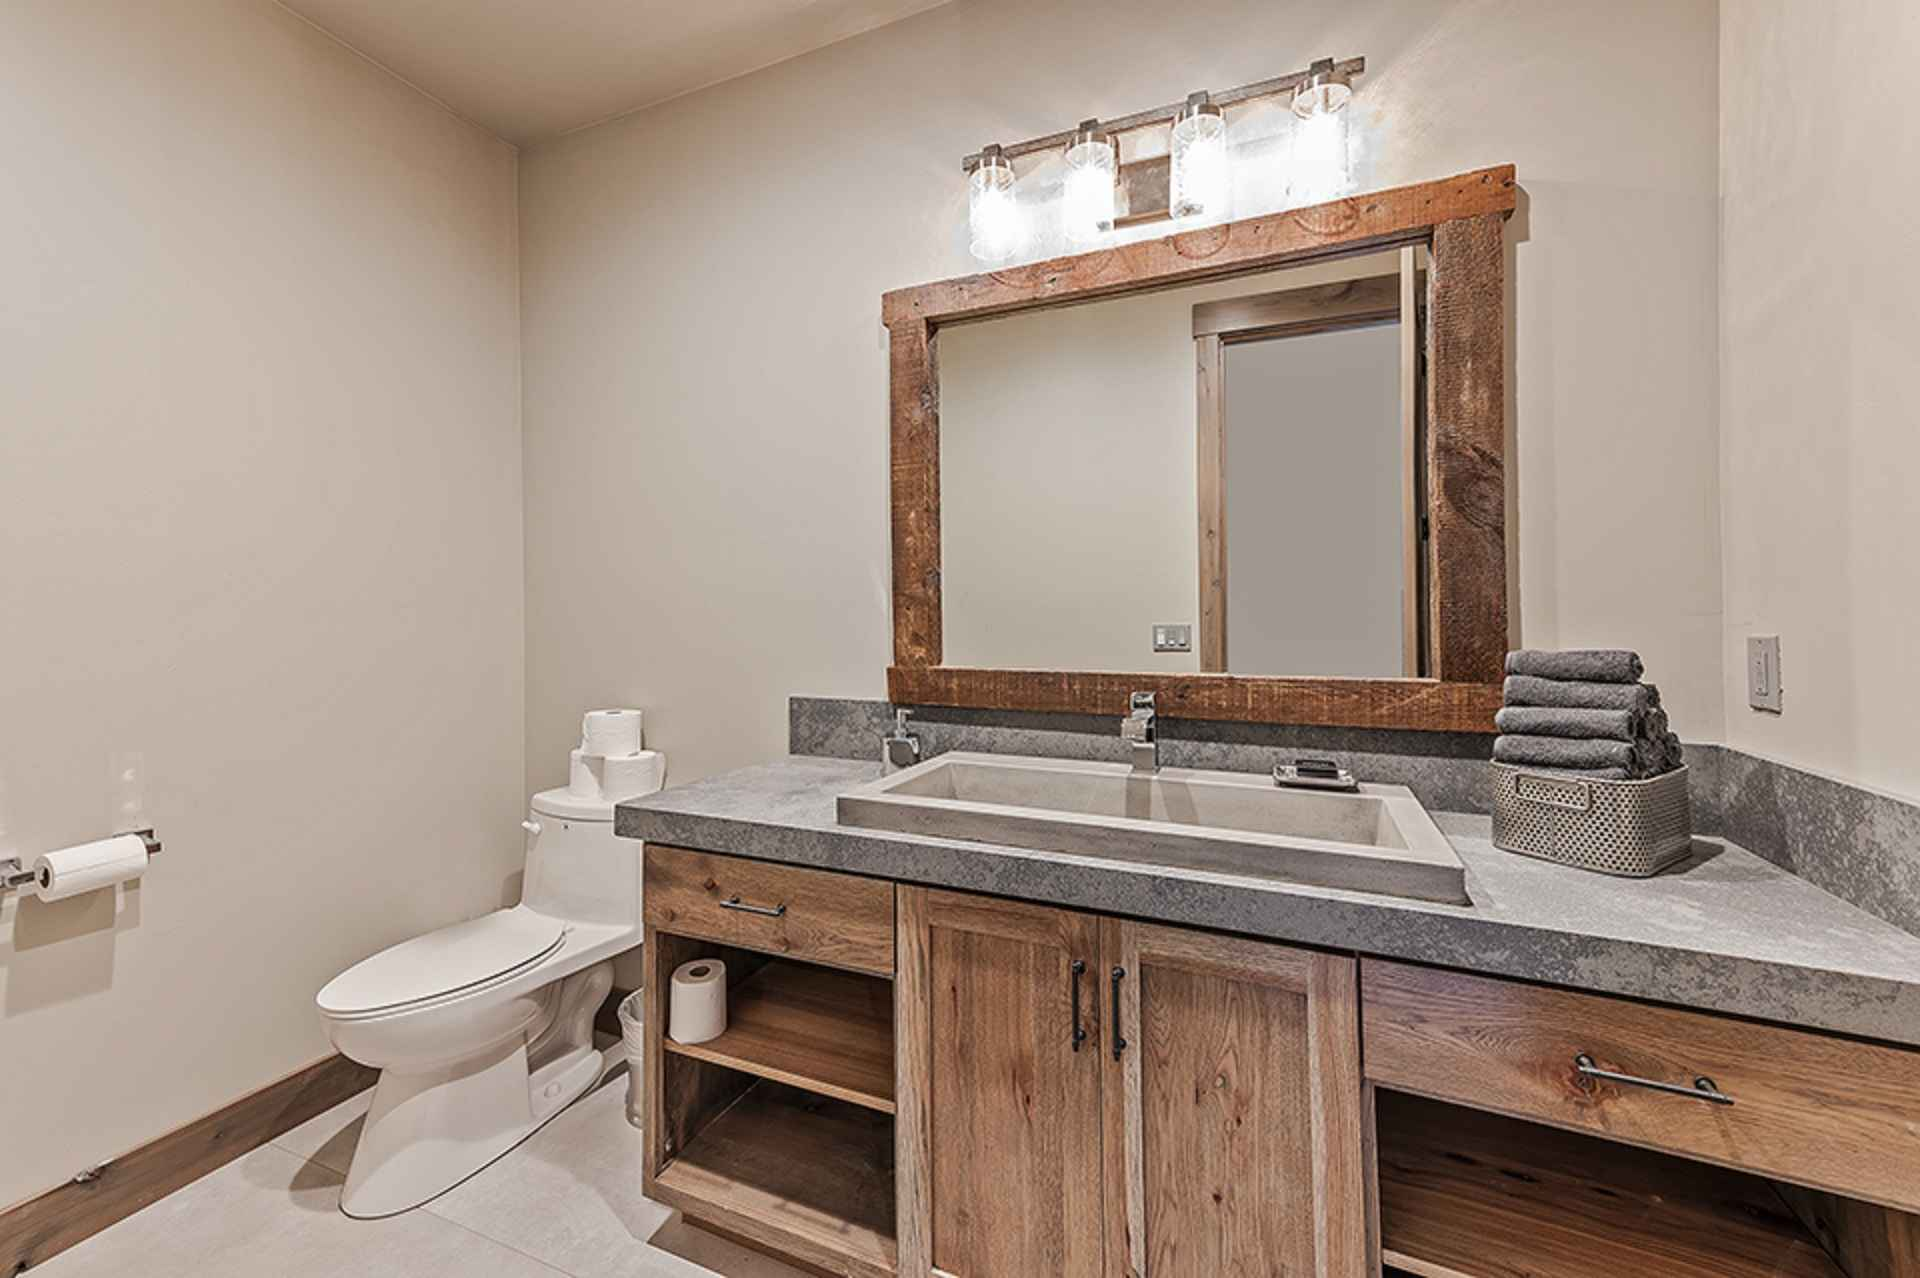 prop_3914_1564424479_13_bedroom_15_bathroom_mega_mansion.jpg